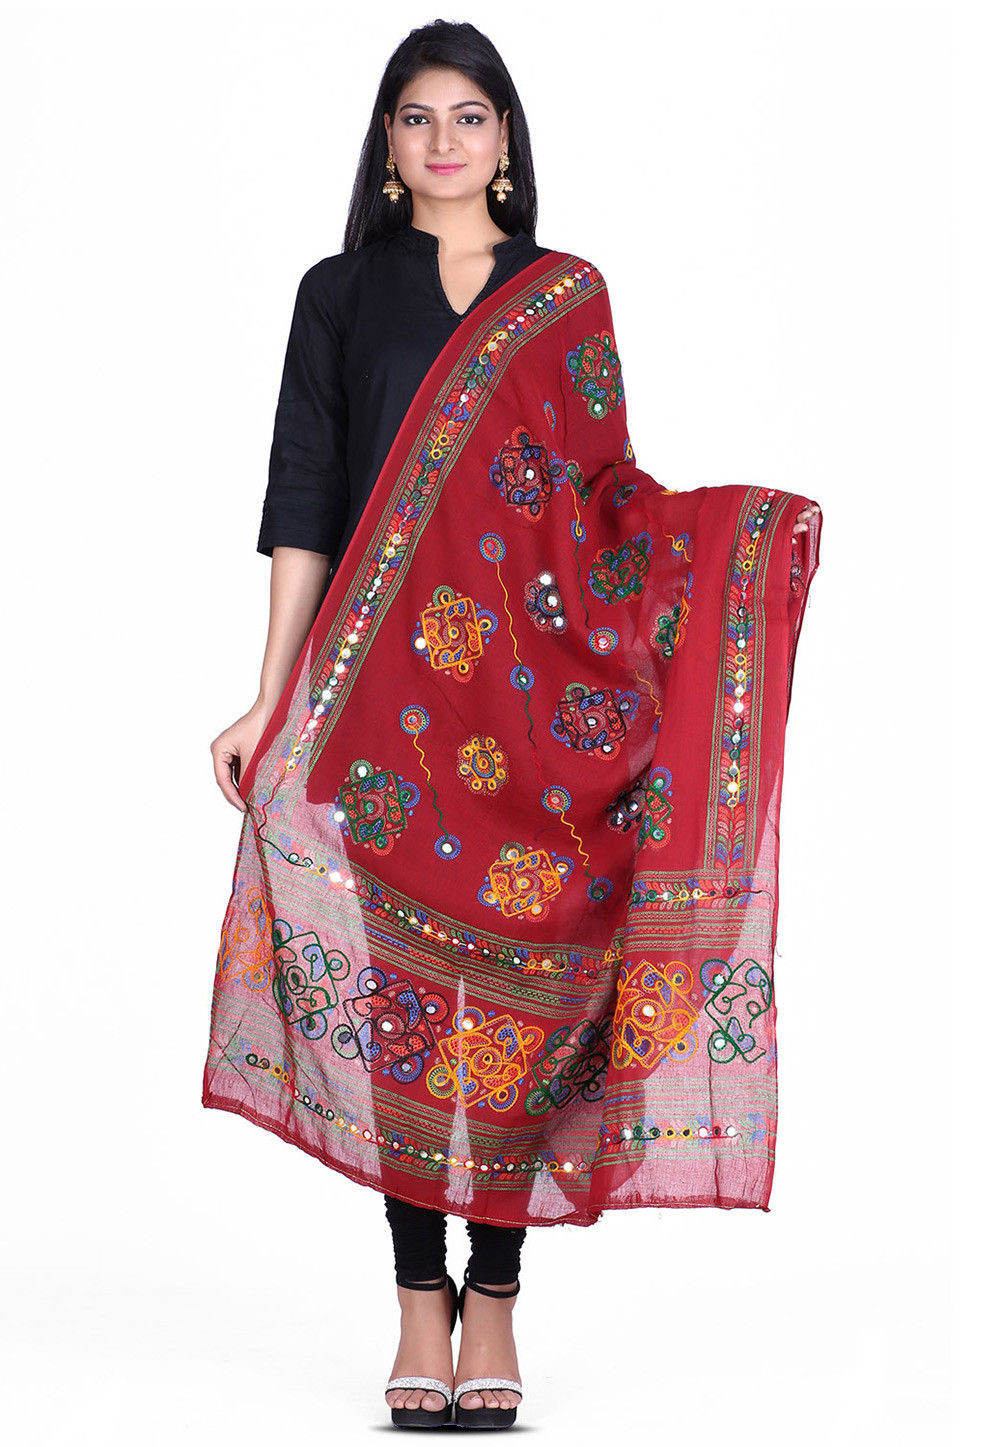 Kantha Embroidered Cotton Dupatta in Maroon